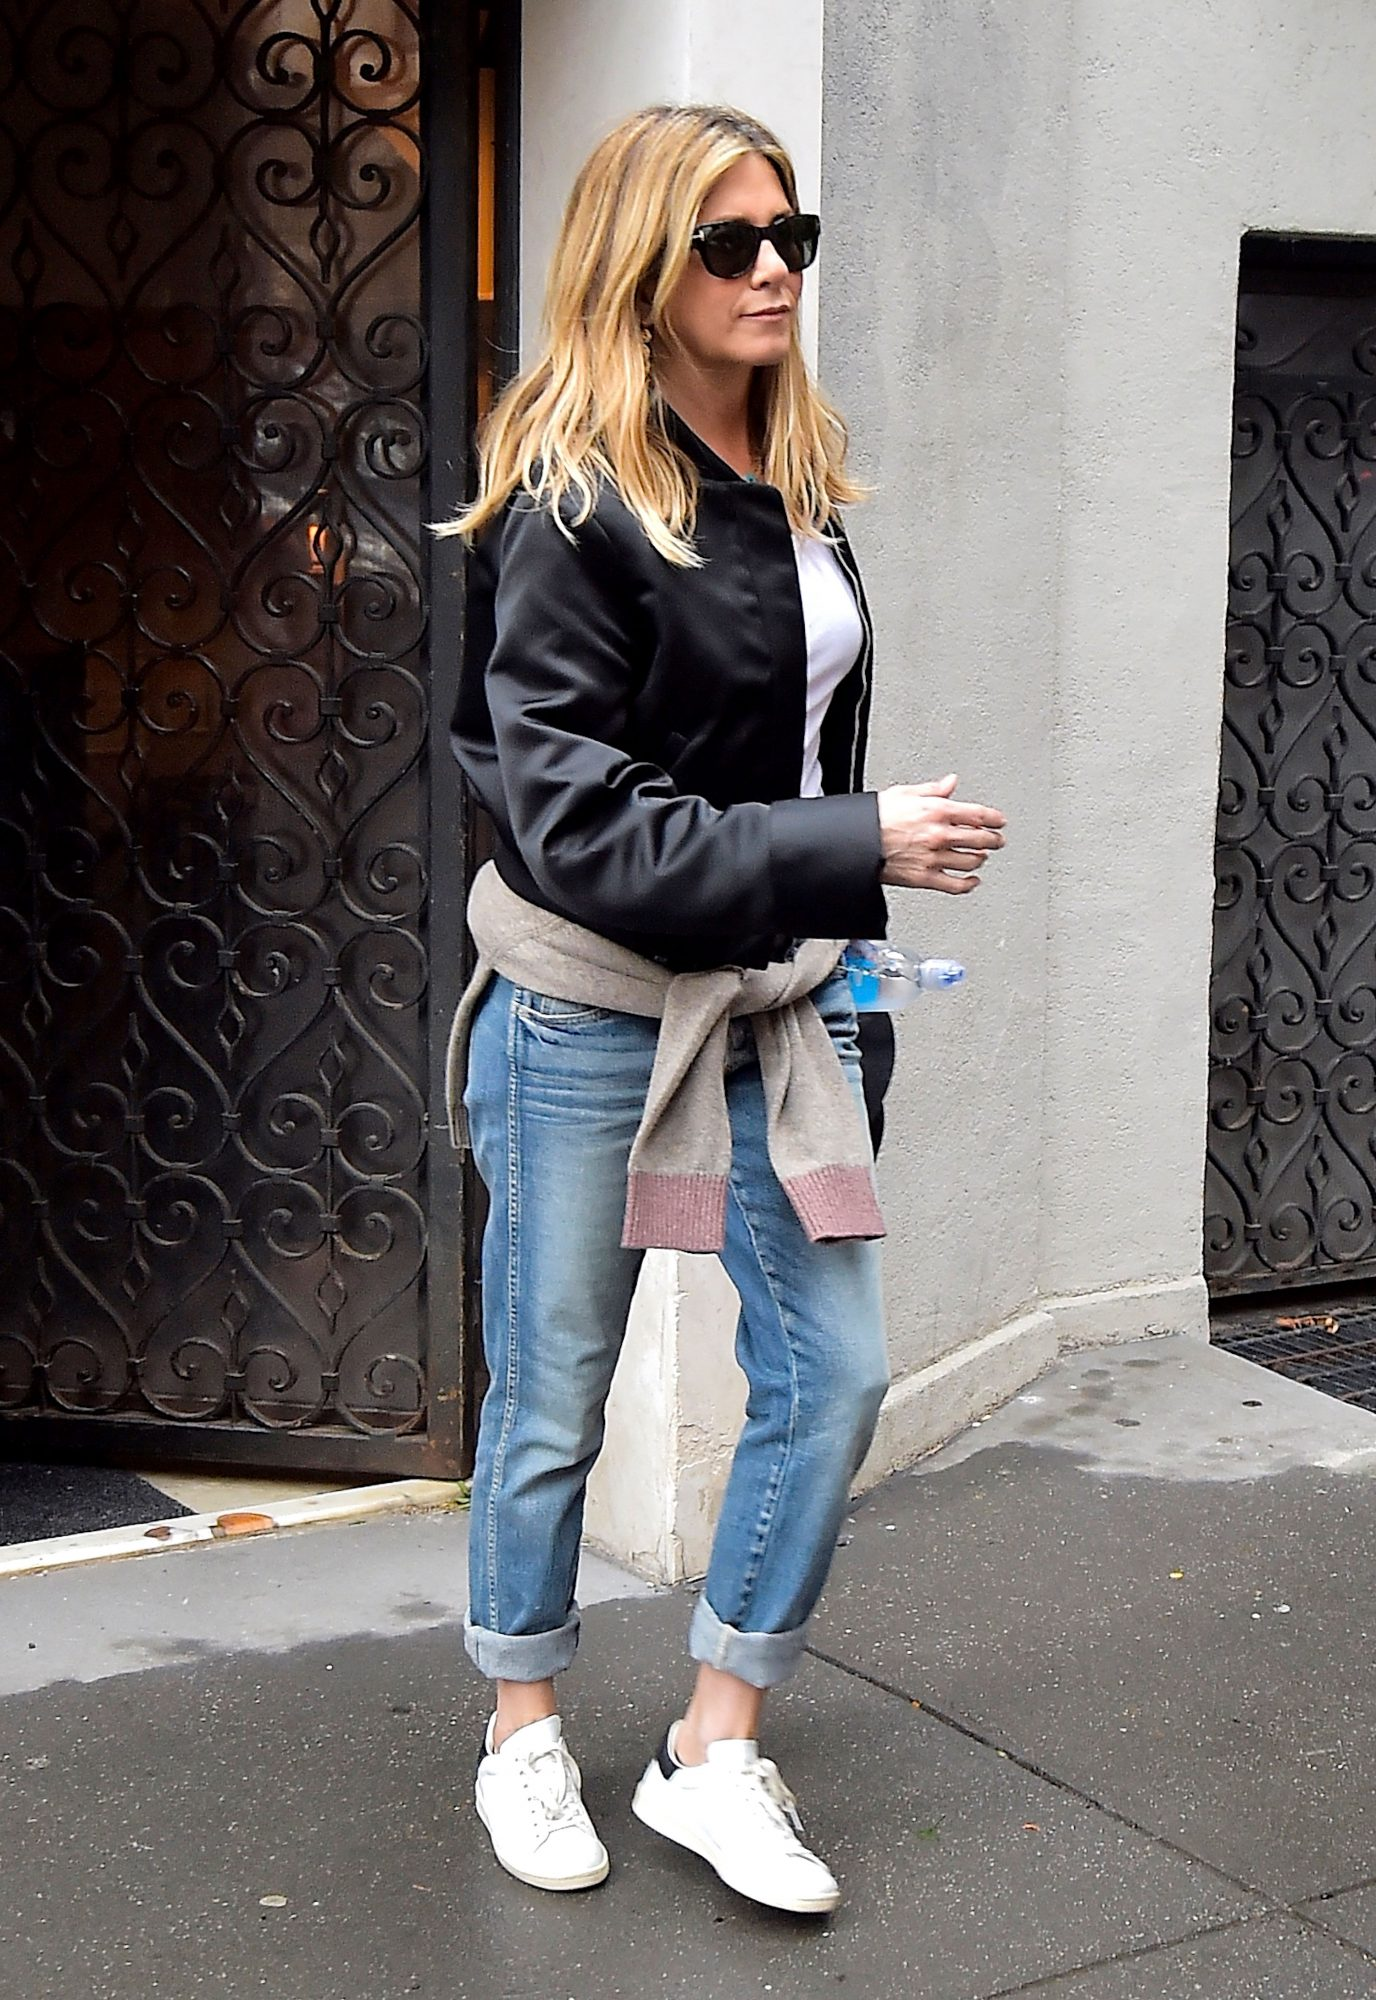 Jennifer Aniston's Rag & Bone Jeans on Sale After Prime Day